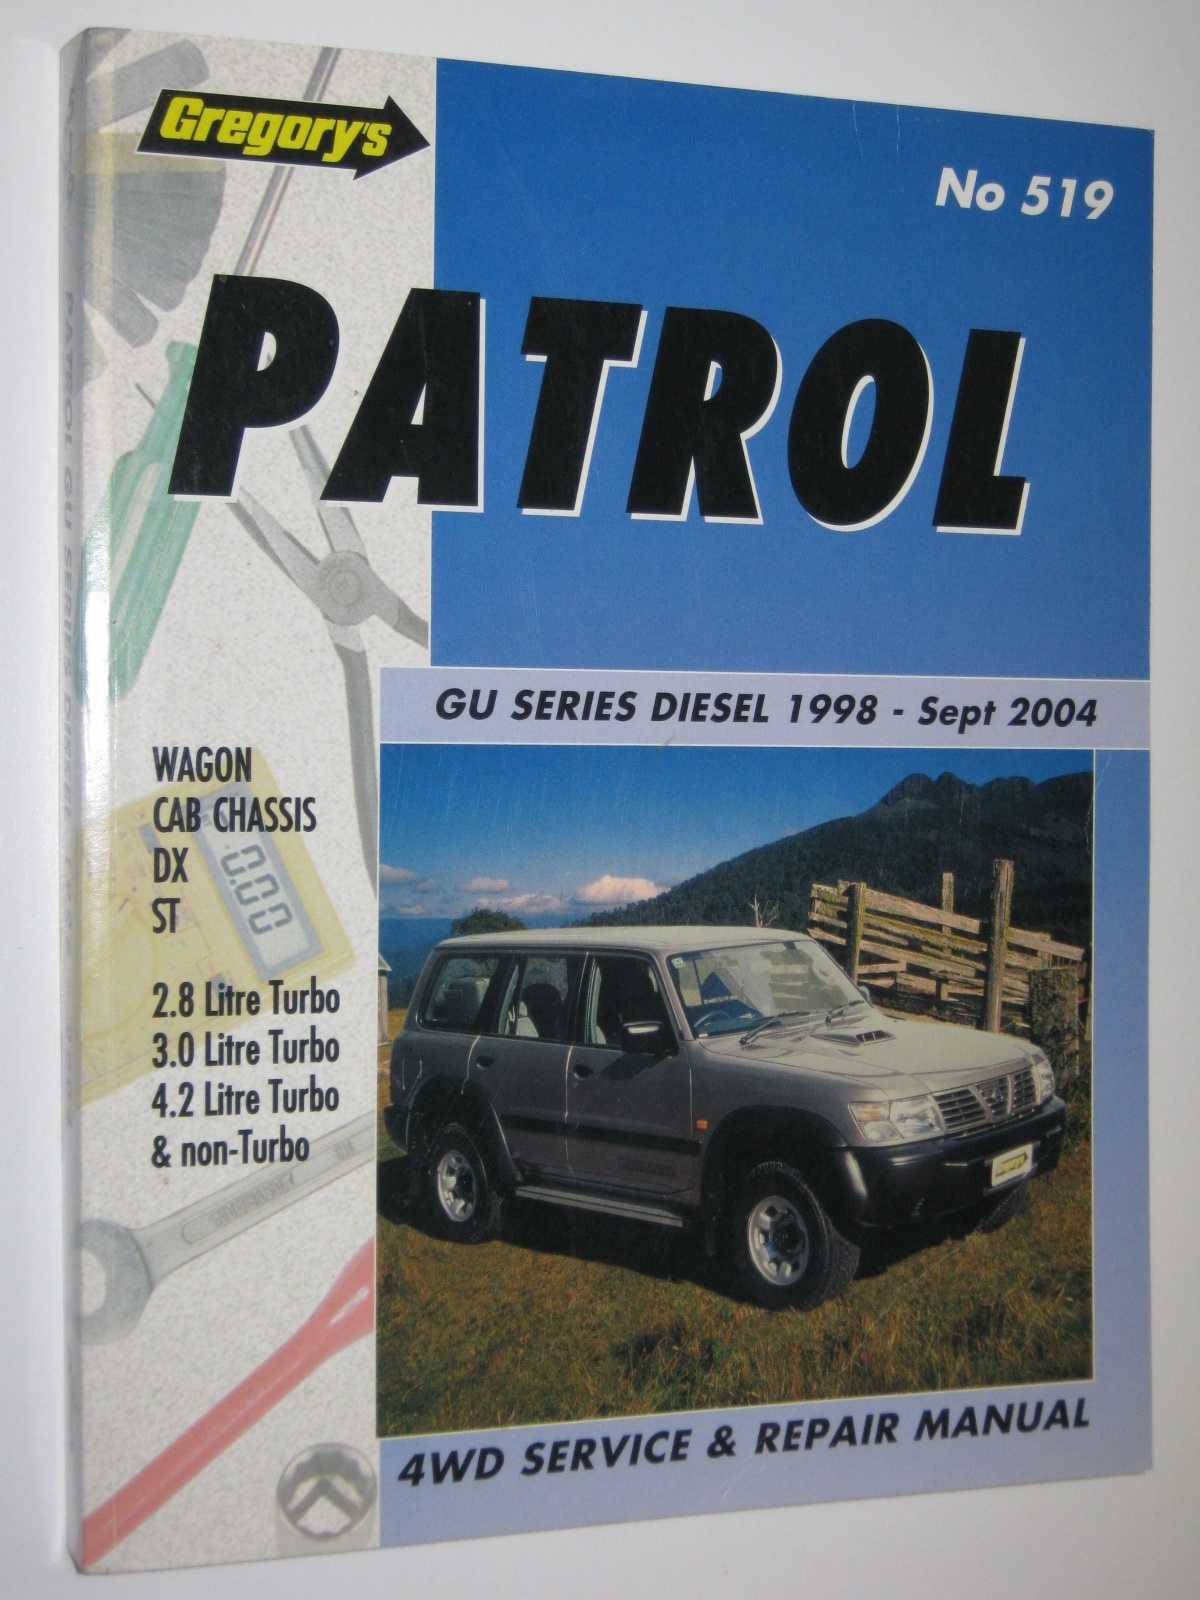 Image for Patrol GU Series Diesel April 1998-Sept 2004 - Service and Repair Manual Series #519